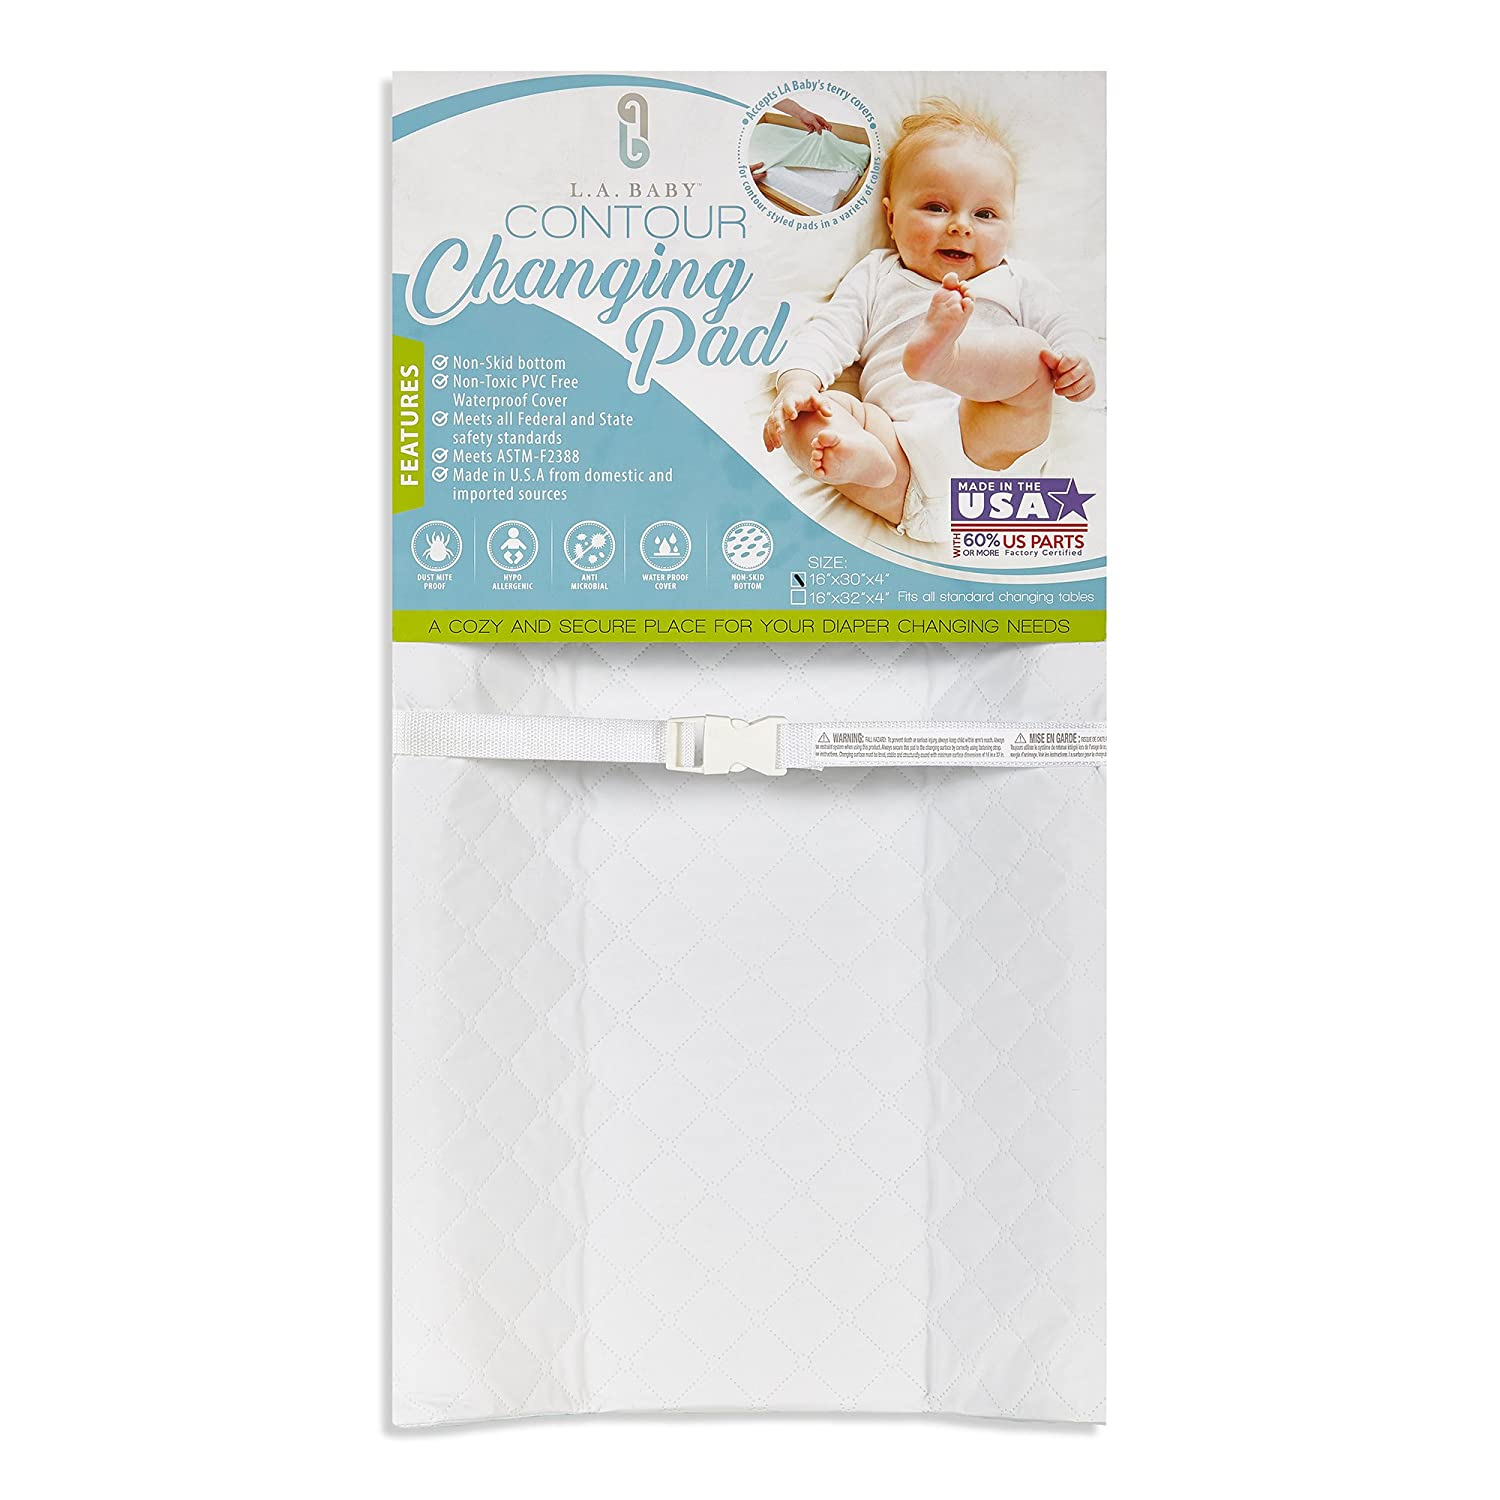 LA Baby Waterproof Contour Changing Pad, 30 - Made in USA. Easy to Clean w/Non-Skid Bottom, Safety Strap, Fits All Standard Changing Tables/Dresser Tops for Best Infant Diaper Change P-3488-30QP